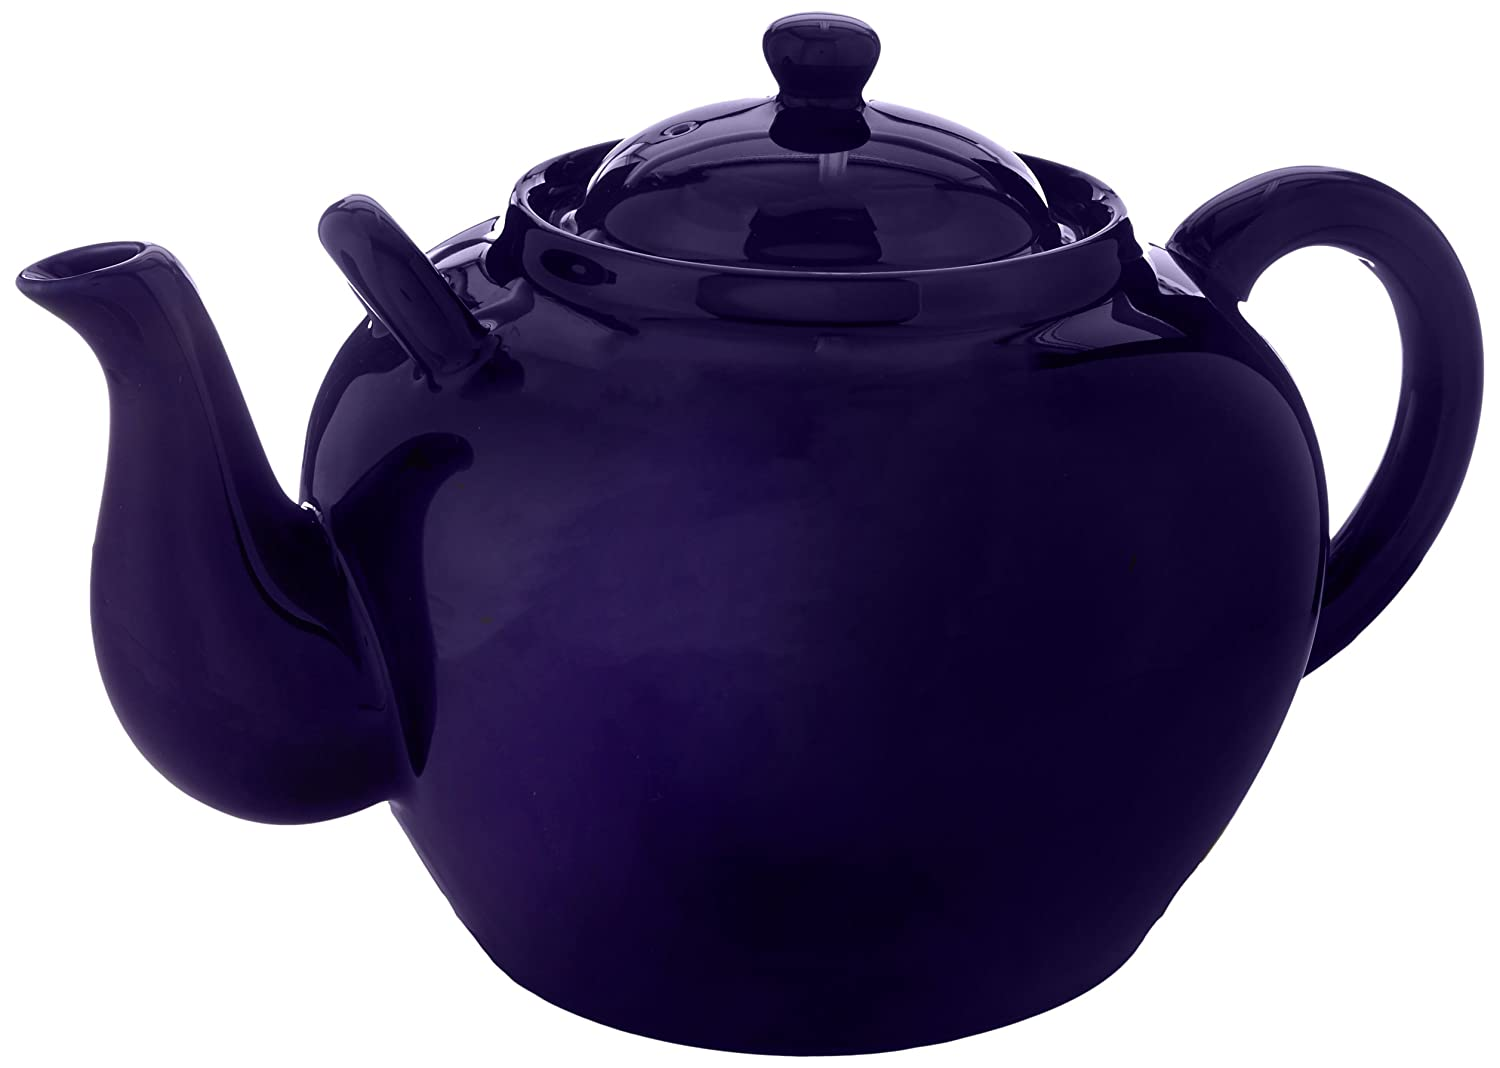 Harold Import Co. NT-653C HIC Teapot, Cobalt, Ceramic Stoneware, 12-Cup, 75-Ounce Capacity